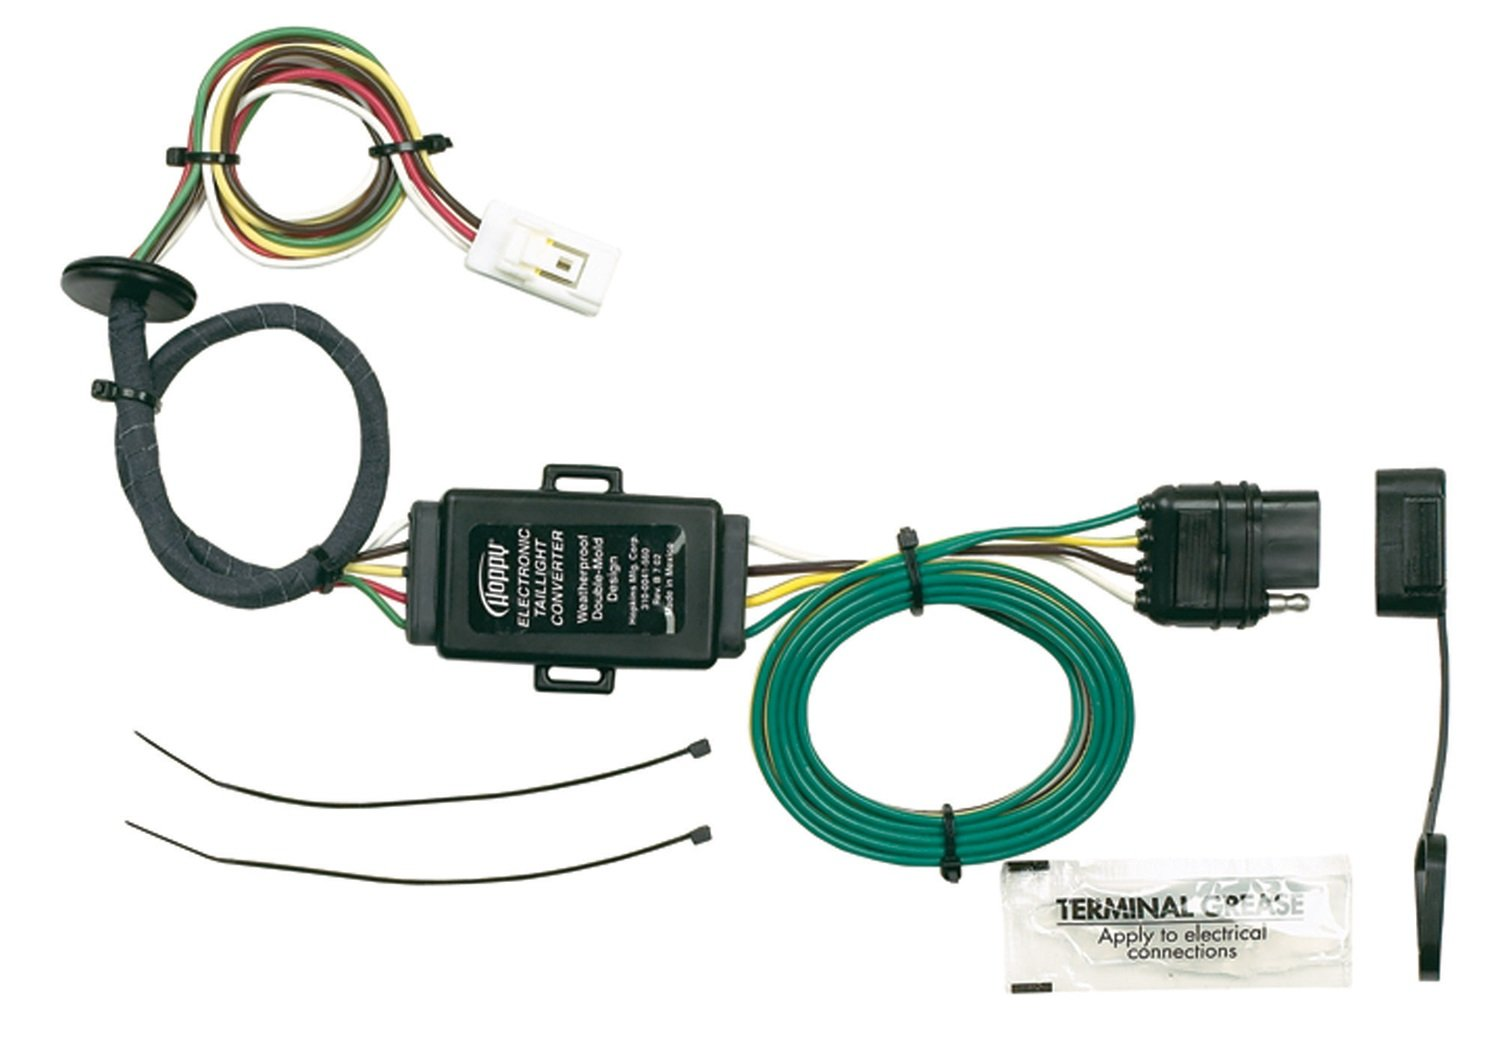 61fZtpD 4JL._SL1500_ amazon com hopkins 43215 plug in simple vehicle wiring kit 1990 Toyota Pickup Wiring Harness at gsmx.co